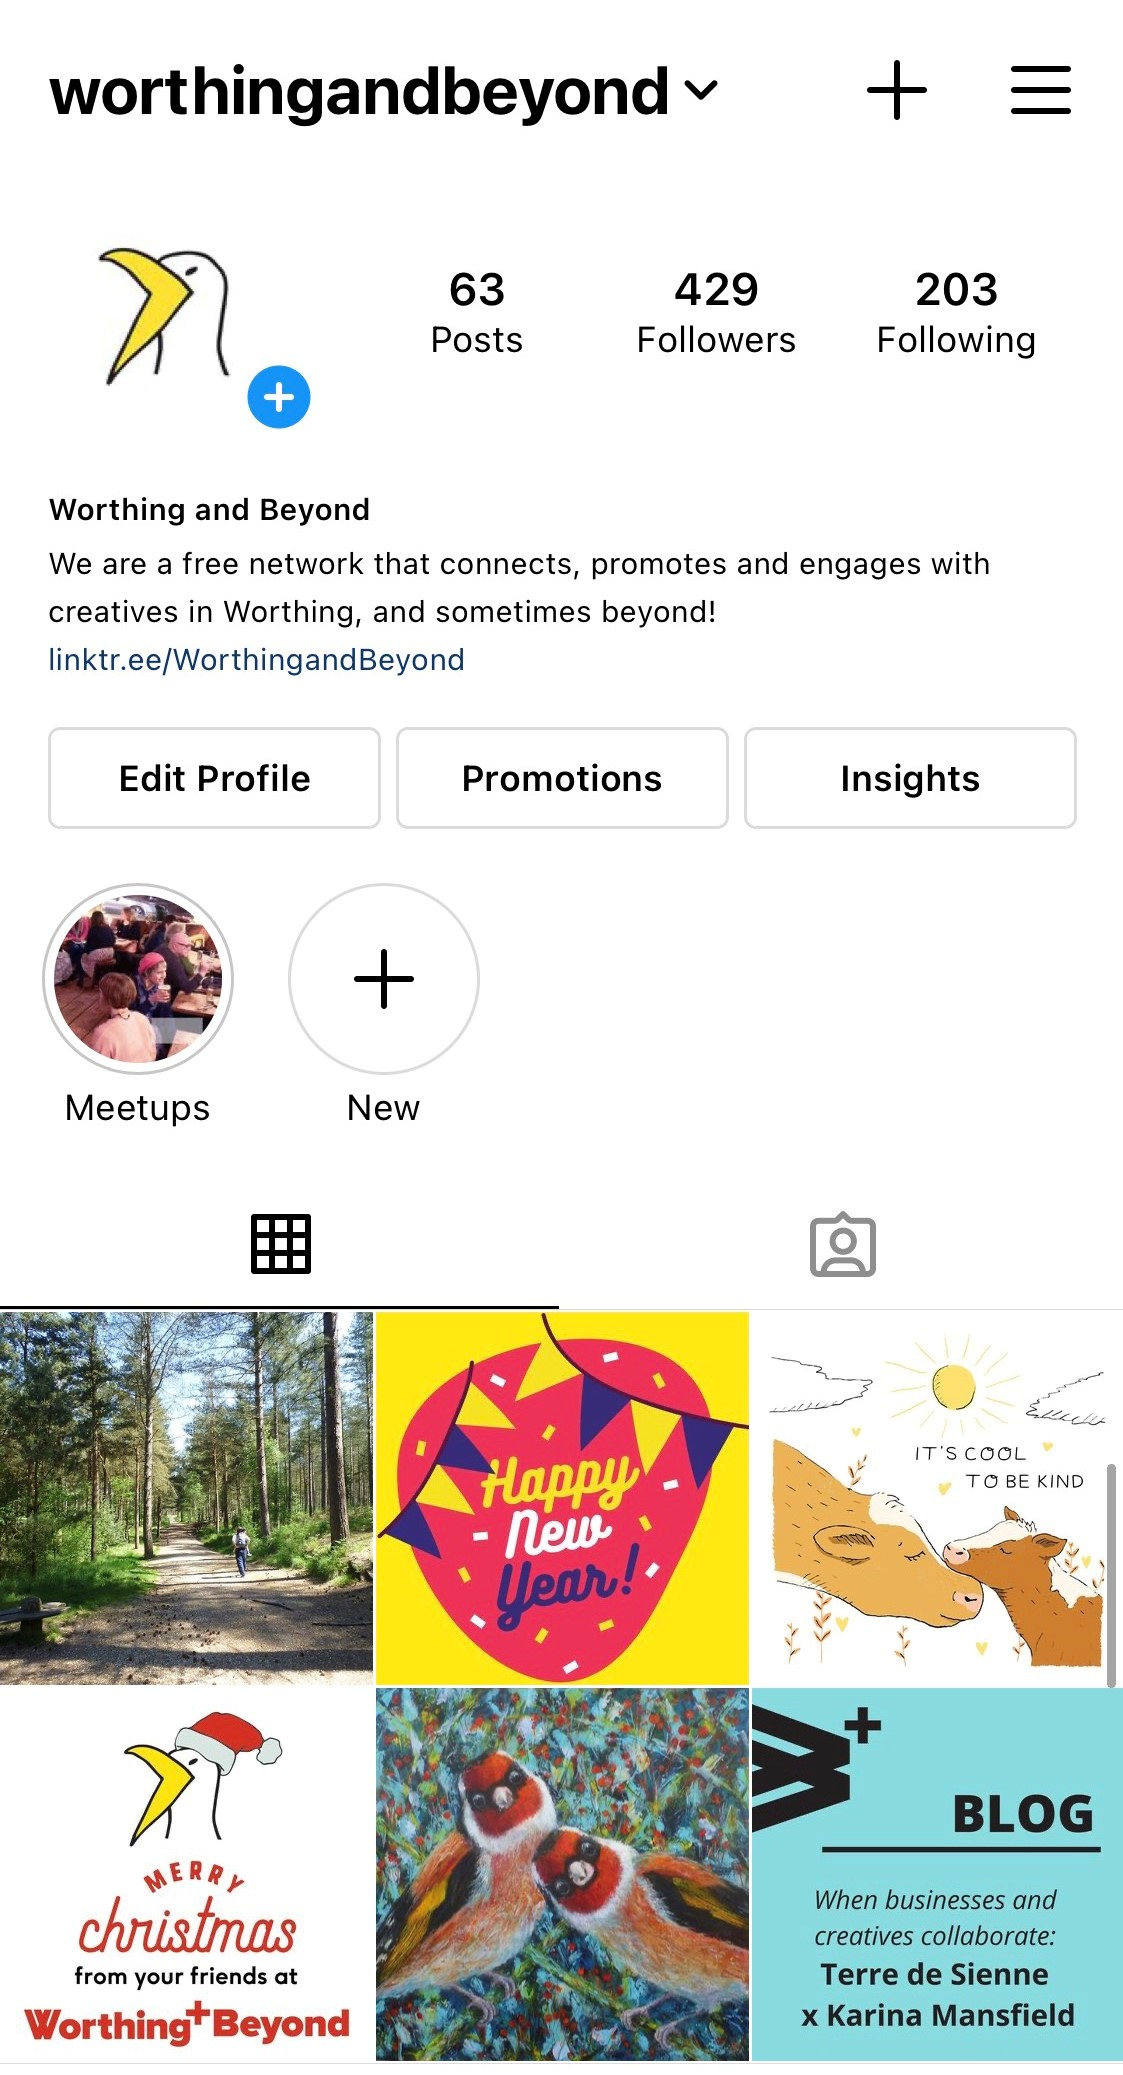 The Worthing & Beyond Instagram grid, showing the follower count of 429 and 6 of the most recent images